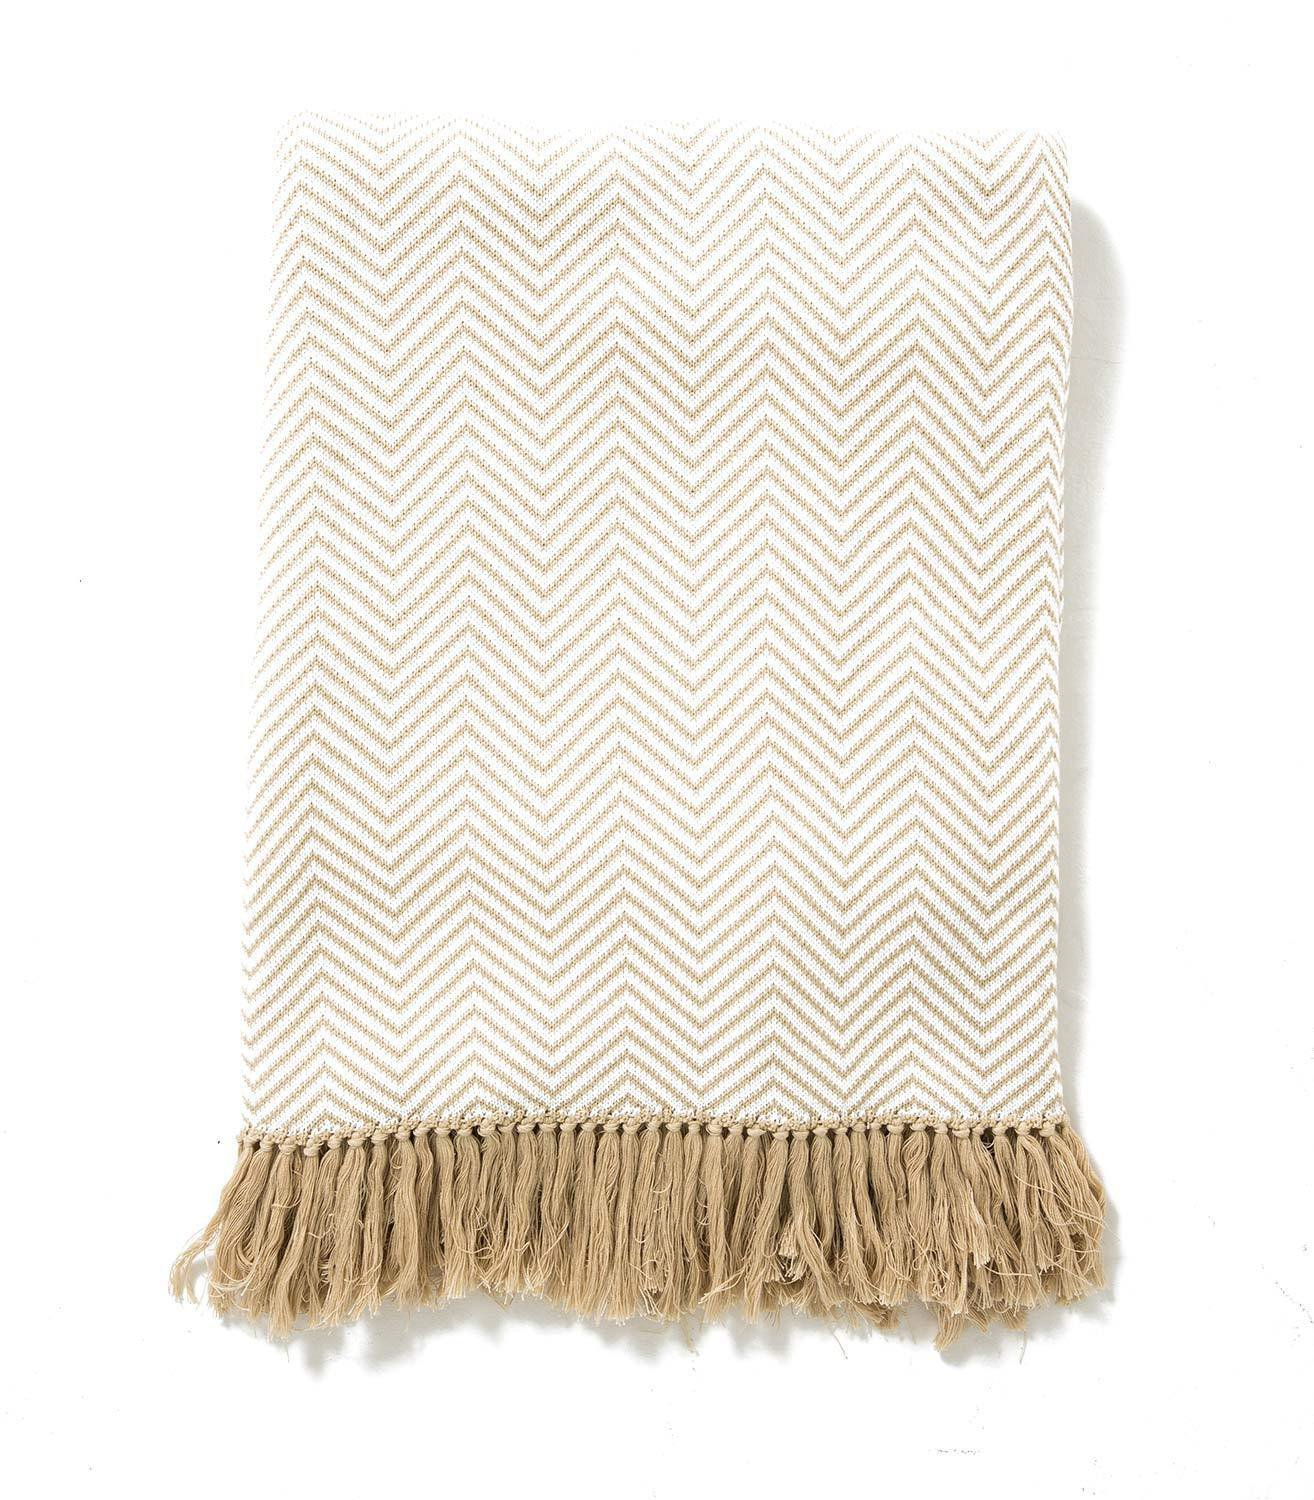 WoolOvers 100% Cotton Chevron Cosy Blanket Throw Cover Soft Knitted Warm